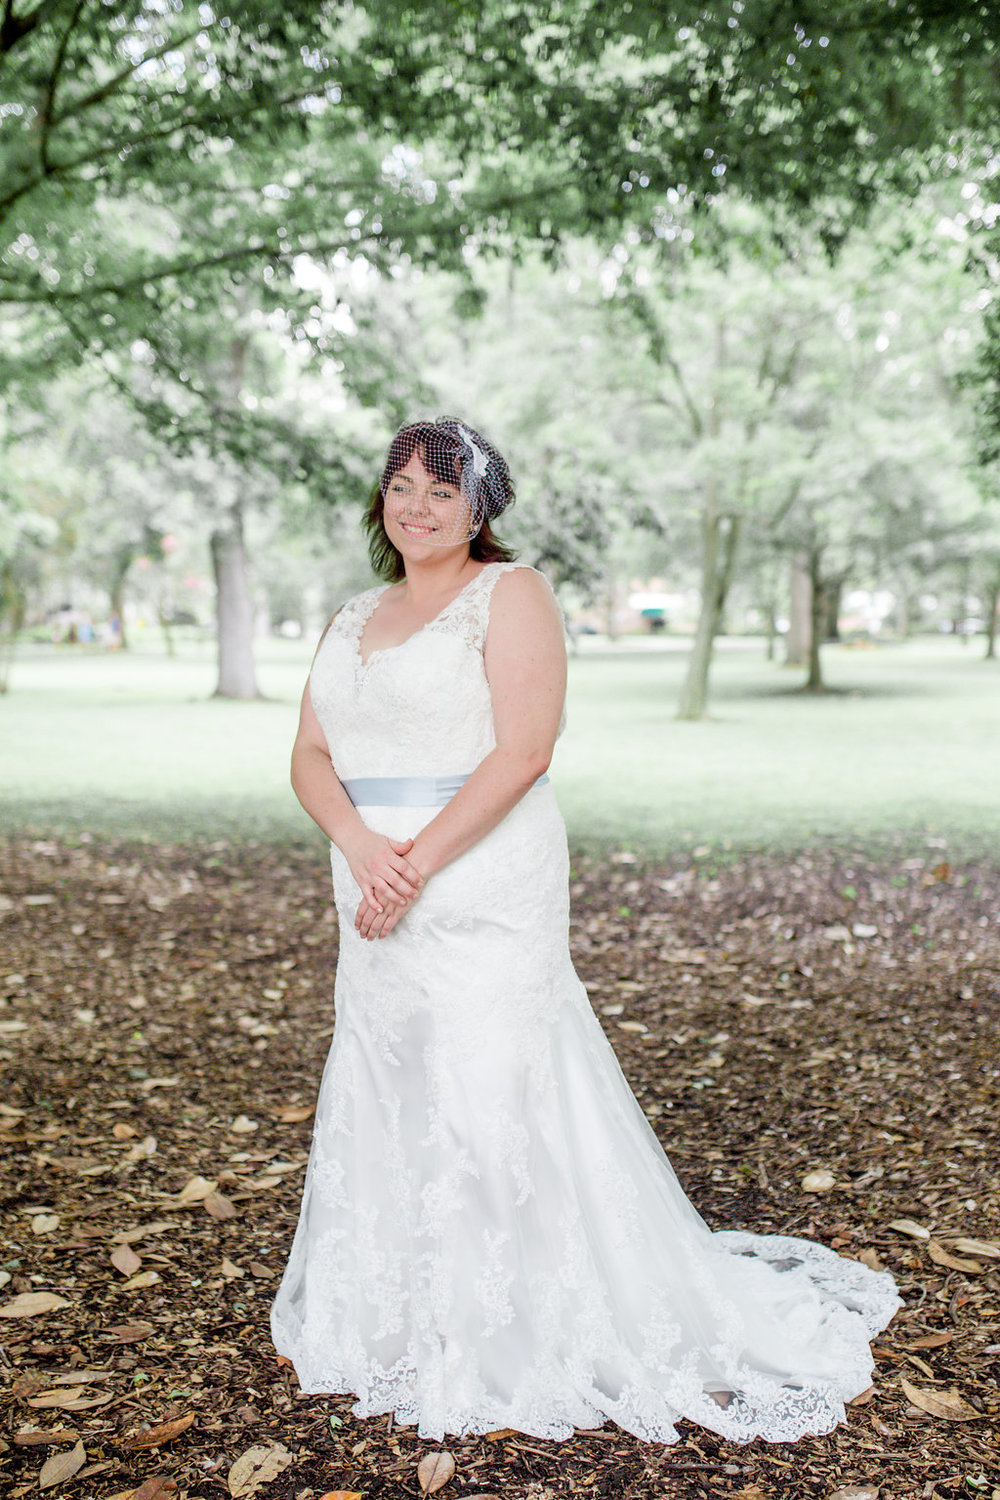 ivory-and-beau-bridal-boutique-alexis-sweet-photography-plus-sized-wedding-gowns-savannah-ga-plus-sized-wedding-dress-savannah-ga-16.jpg